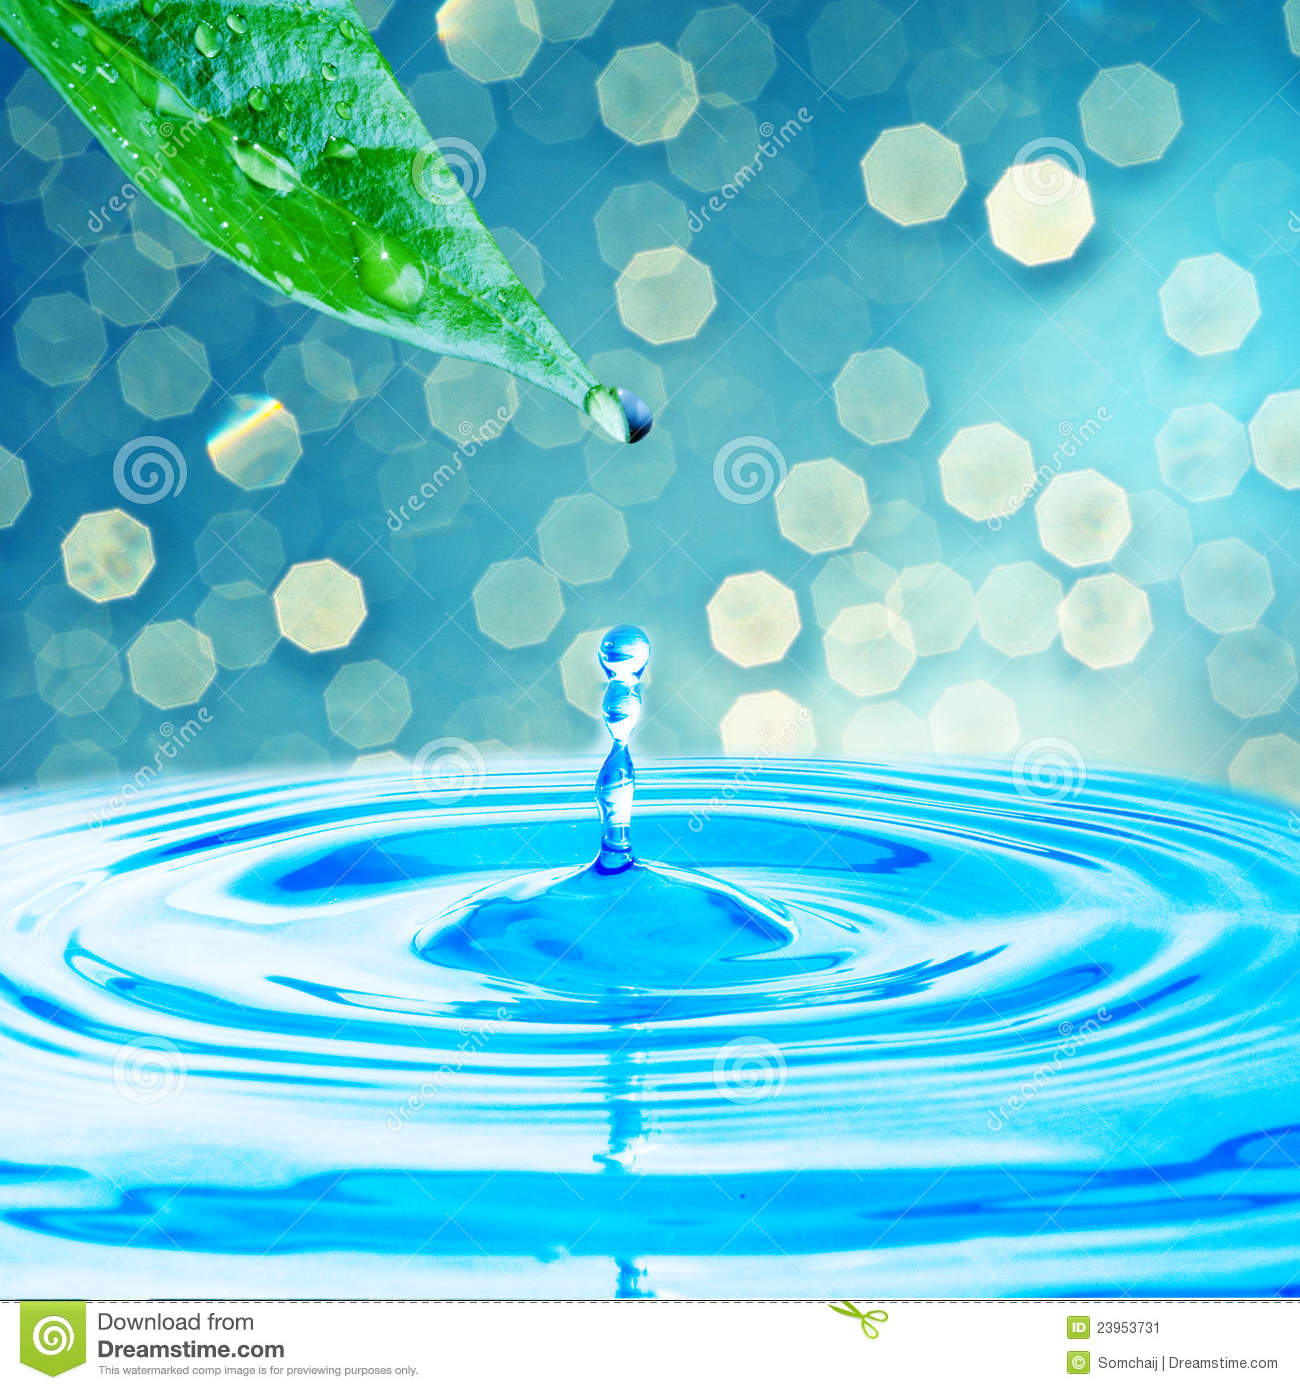 Drop Of Water Falling From A Leaf Wallpaper Water Drop From Green Leaf Stock Image Image 23953731